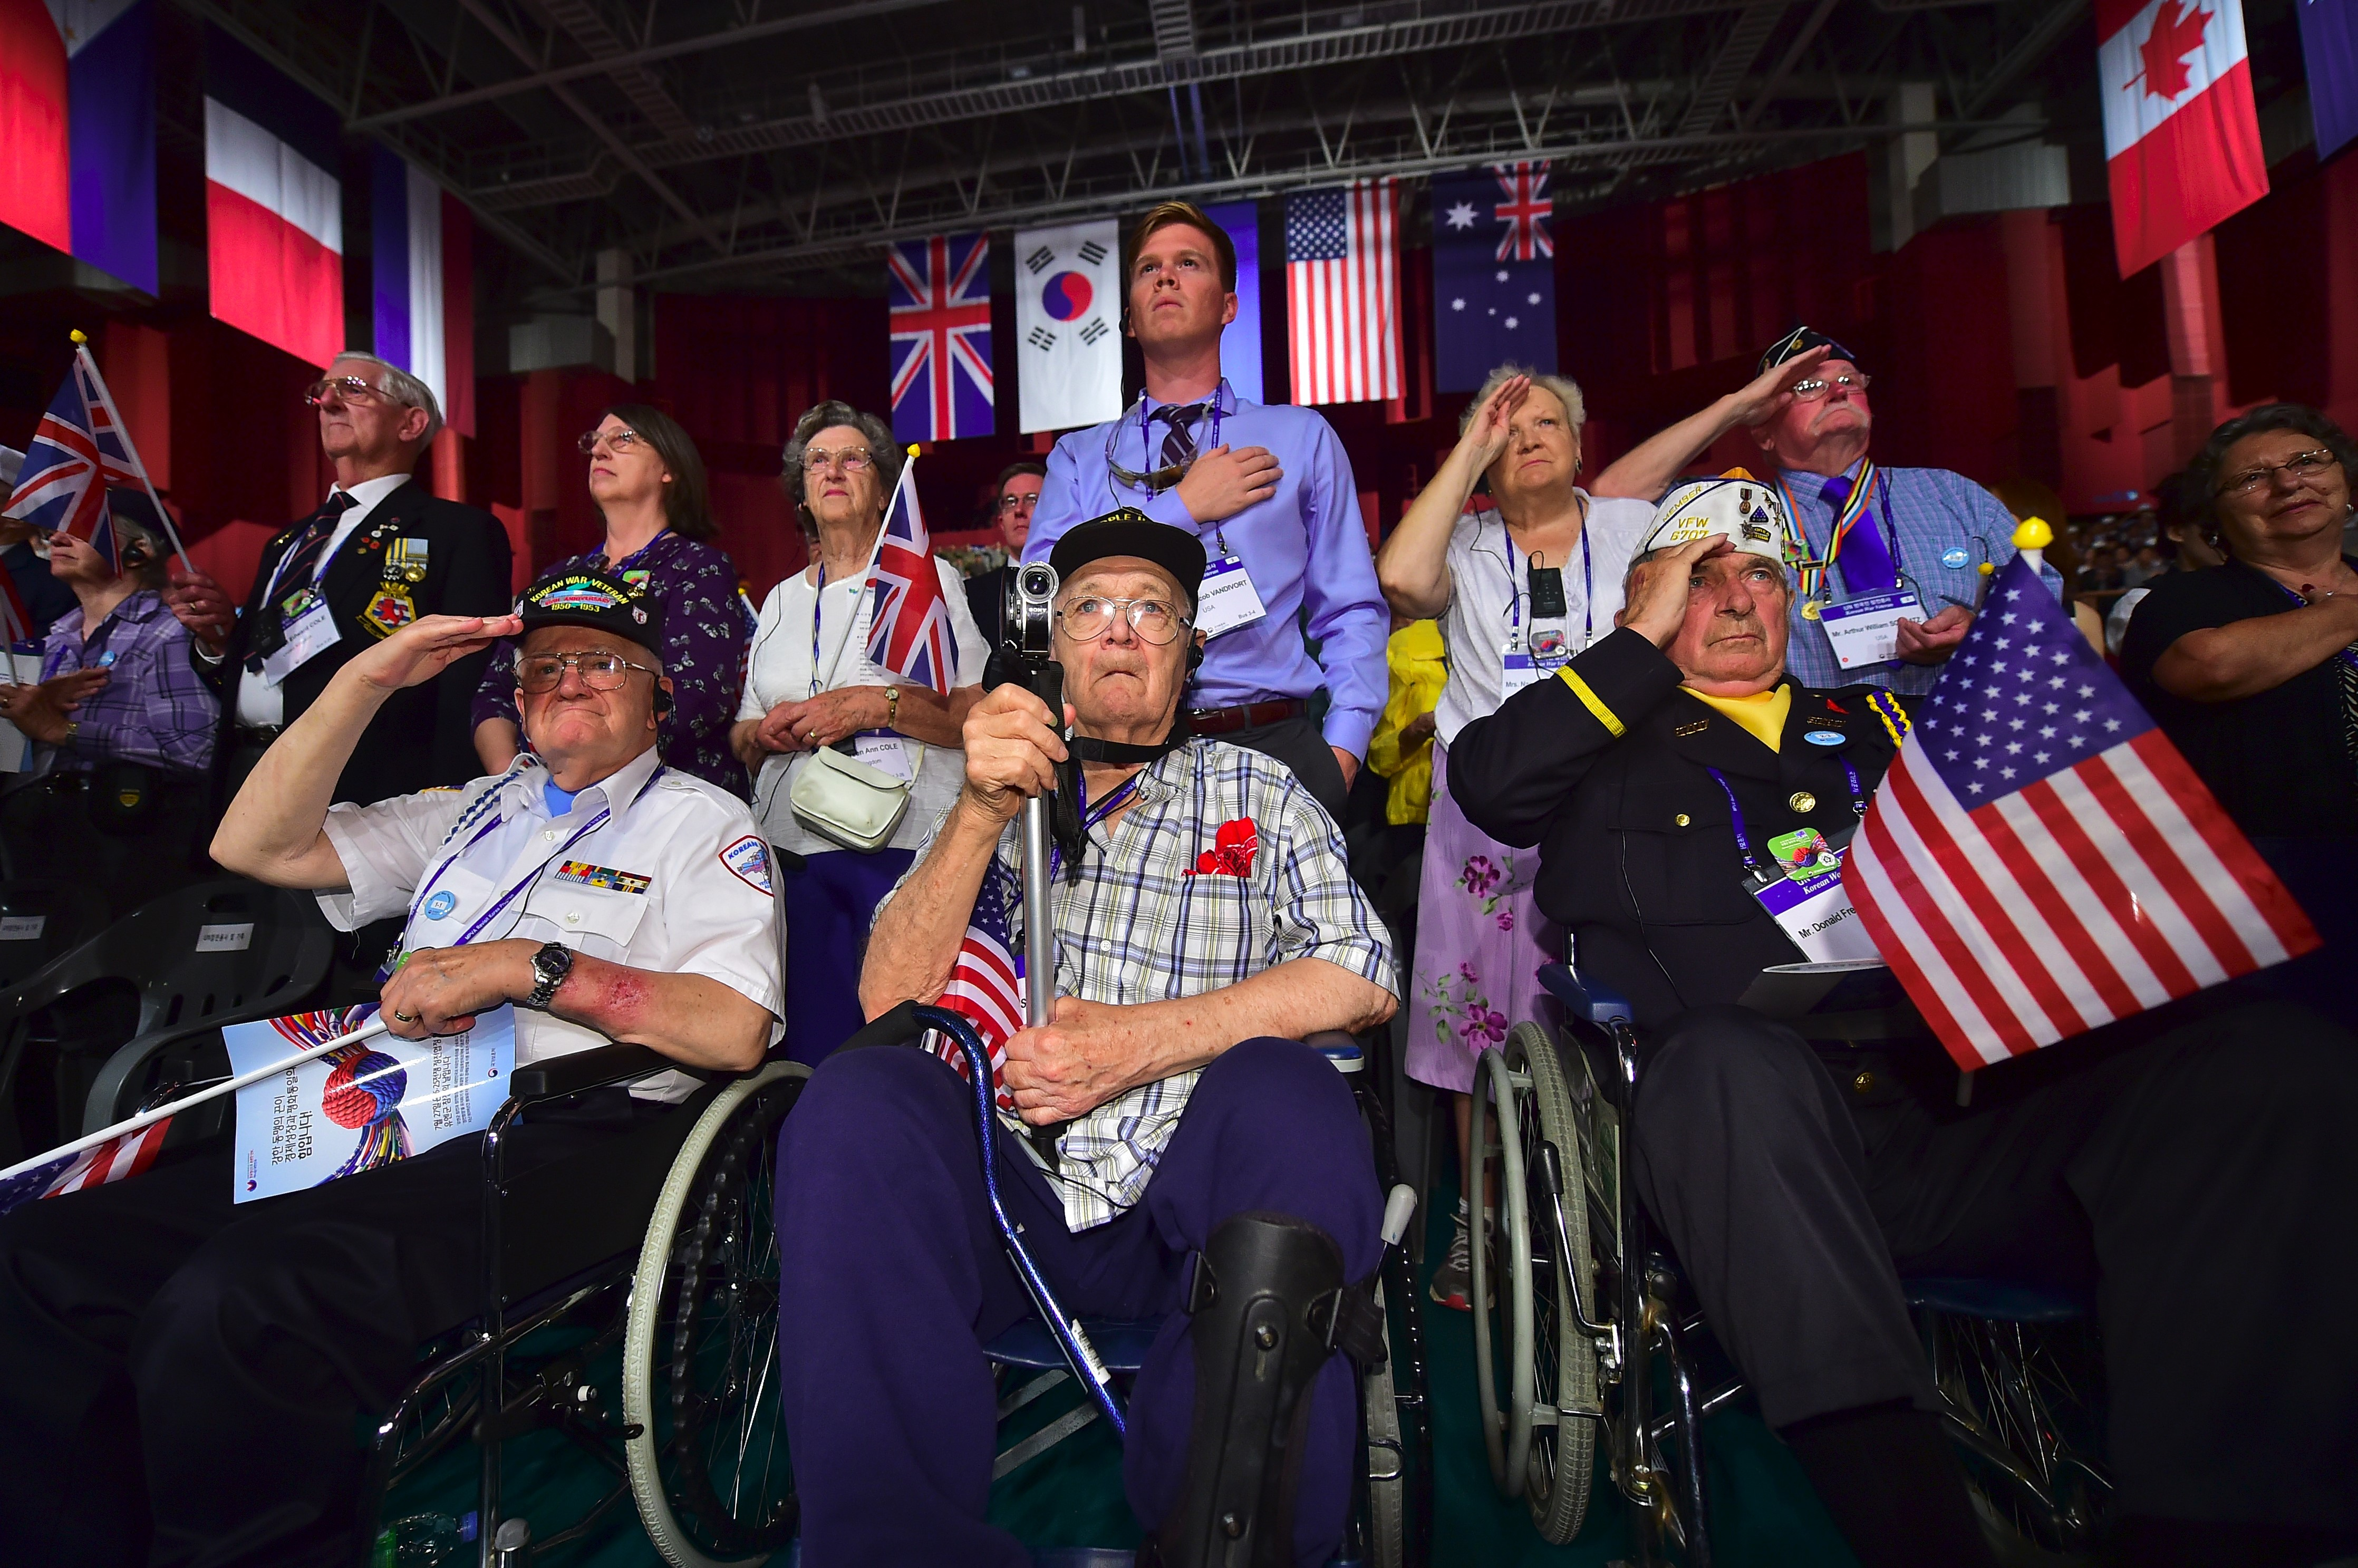 Invited US veterans, who fought in the Korean War under the United Nations flag, and their family members salute during a ceremony to commemorate the 63rd anniversary of the Korean War Armistice Agreement in Seoul on July 27, 2016.